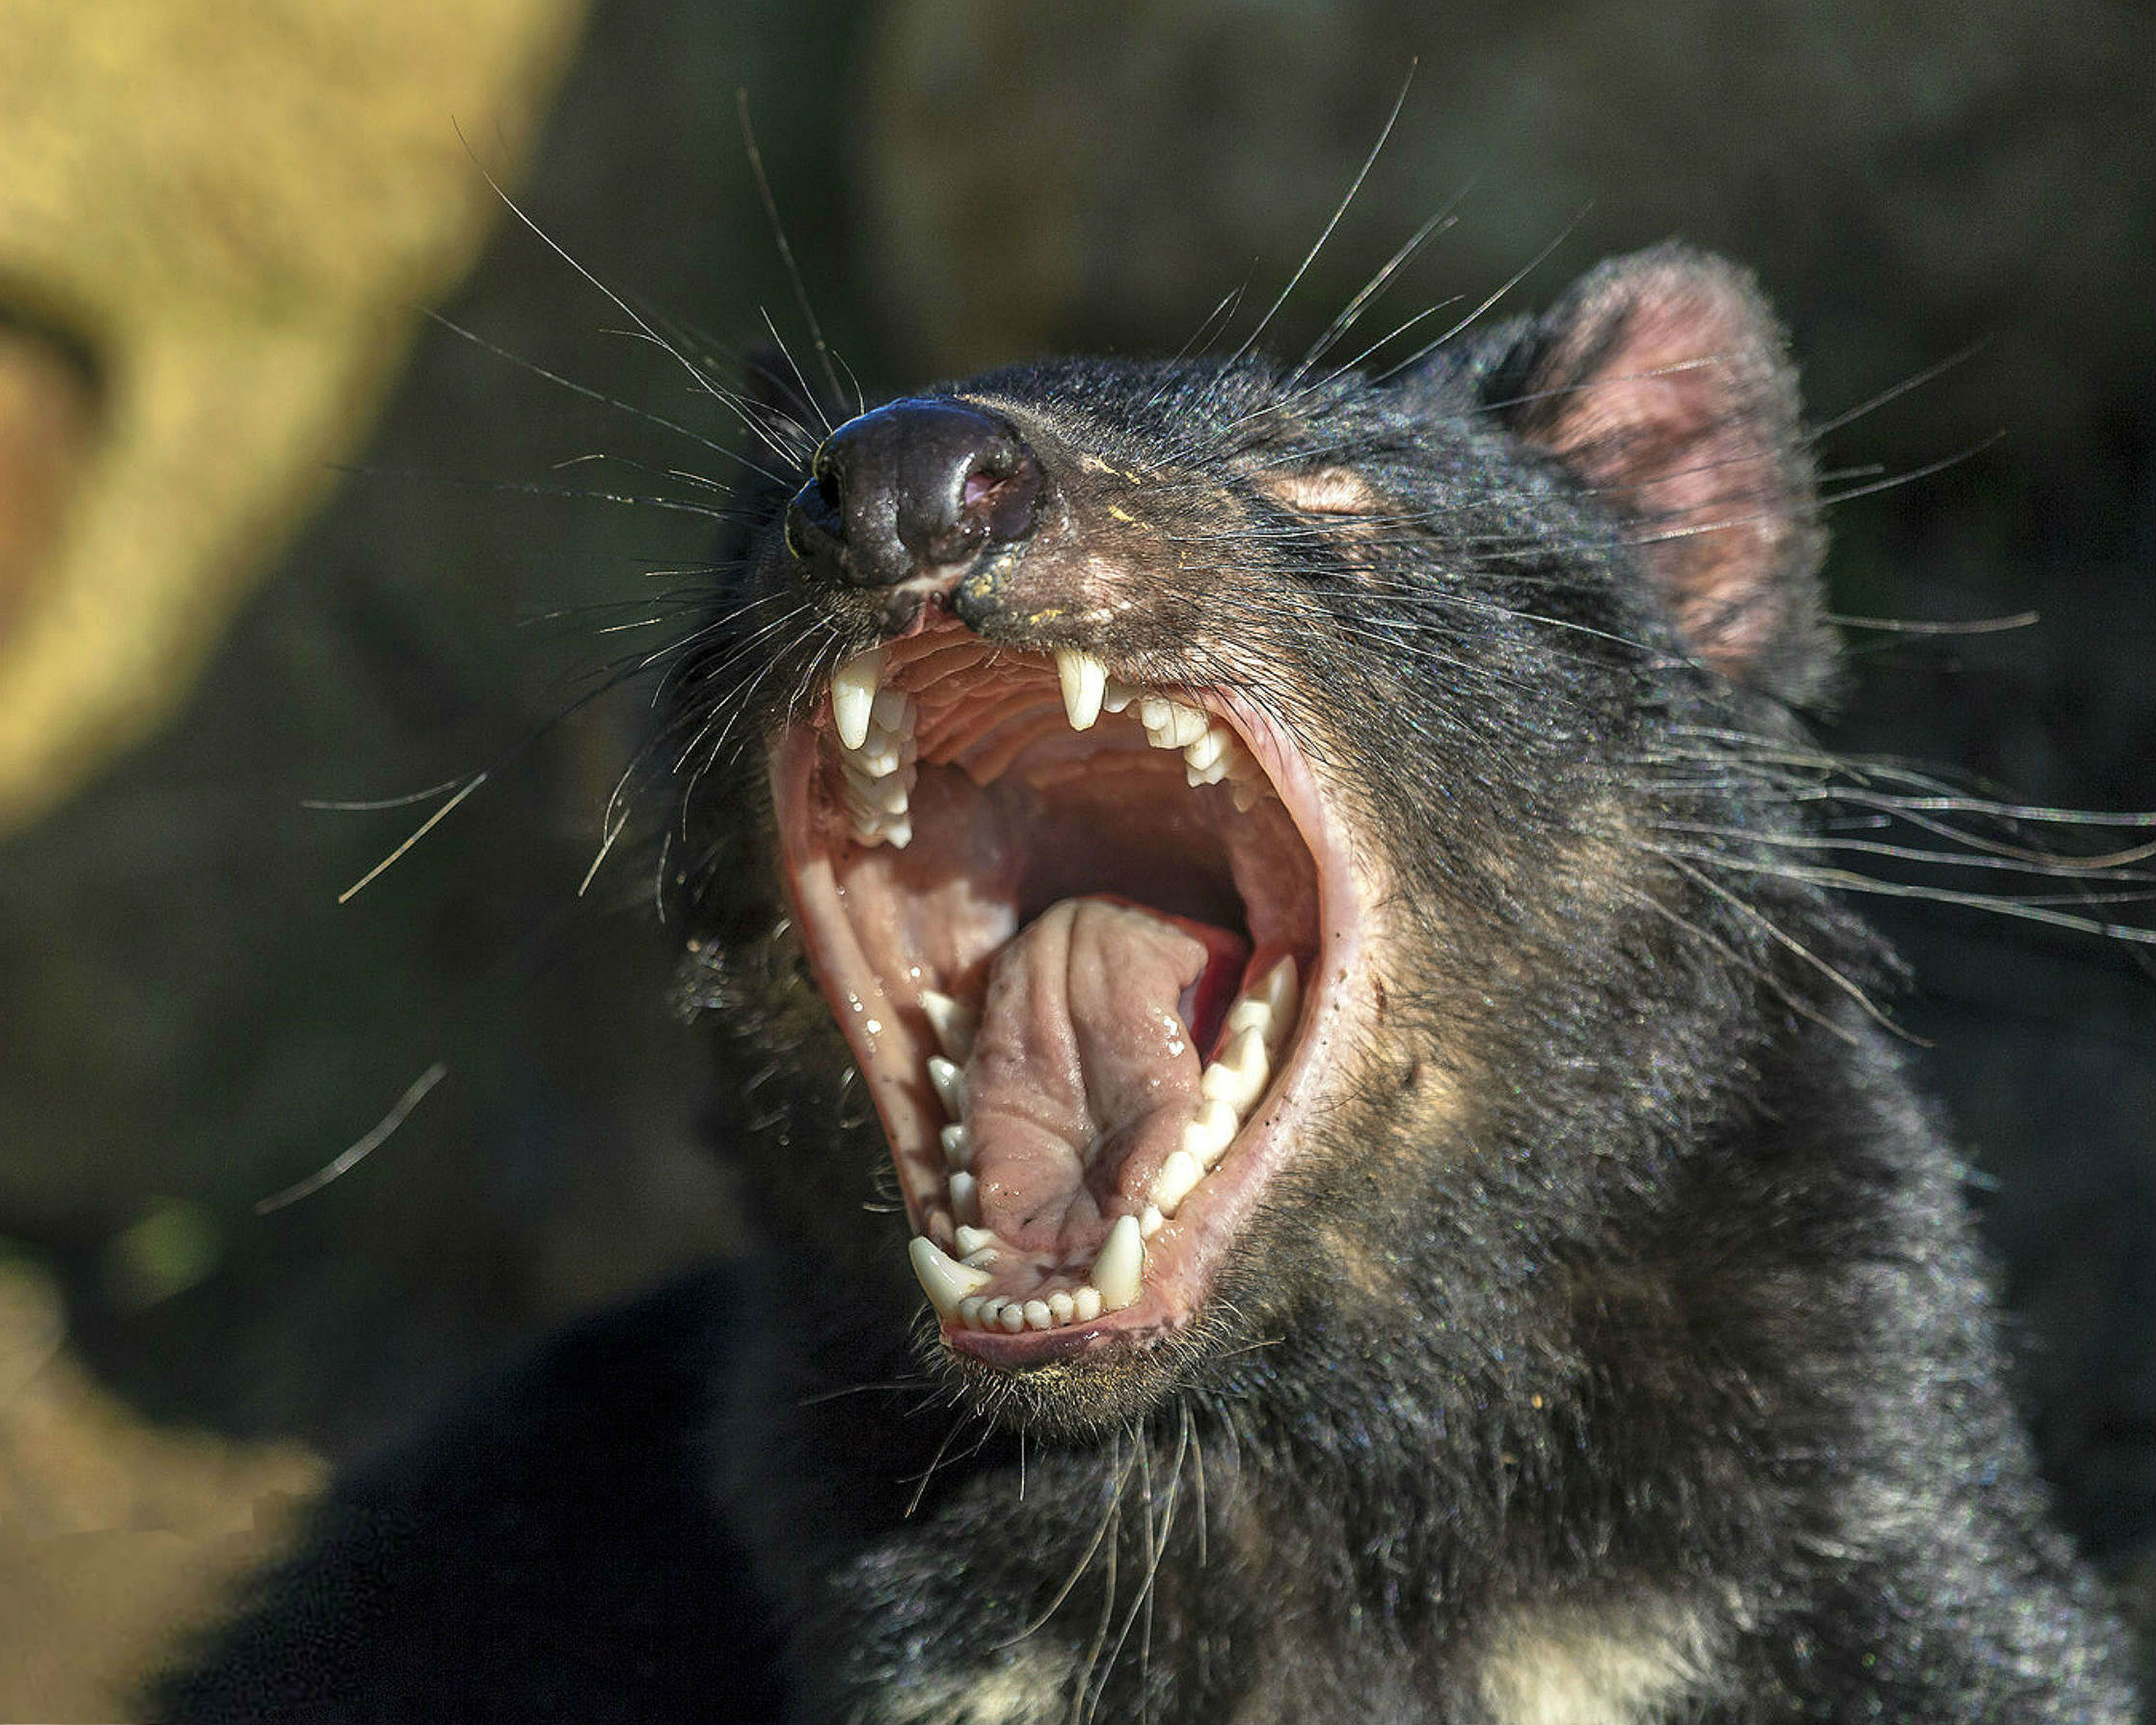 Tassie_Devil_open_mouth_henrih_56.jpg